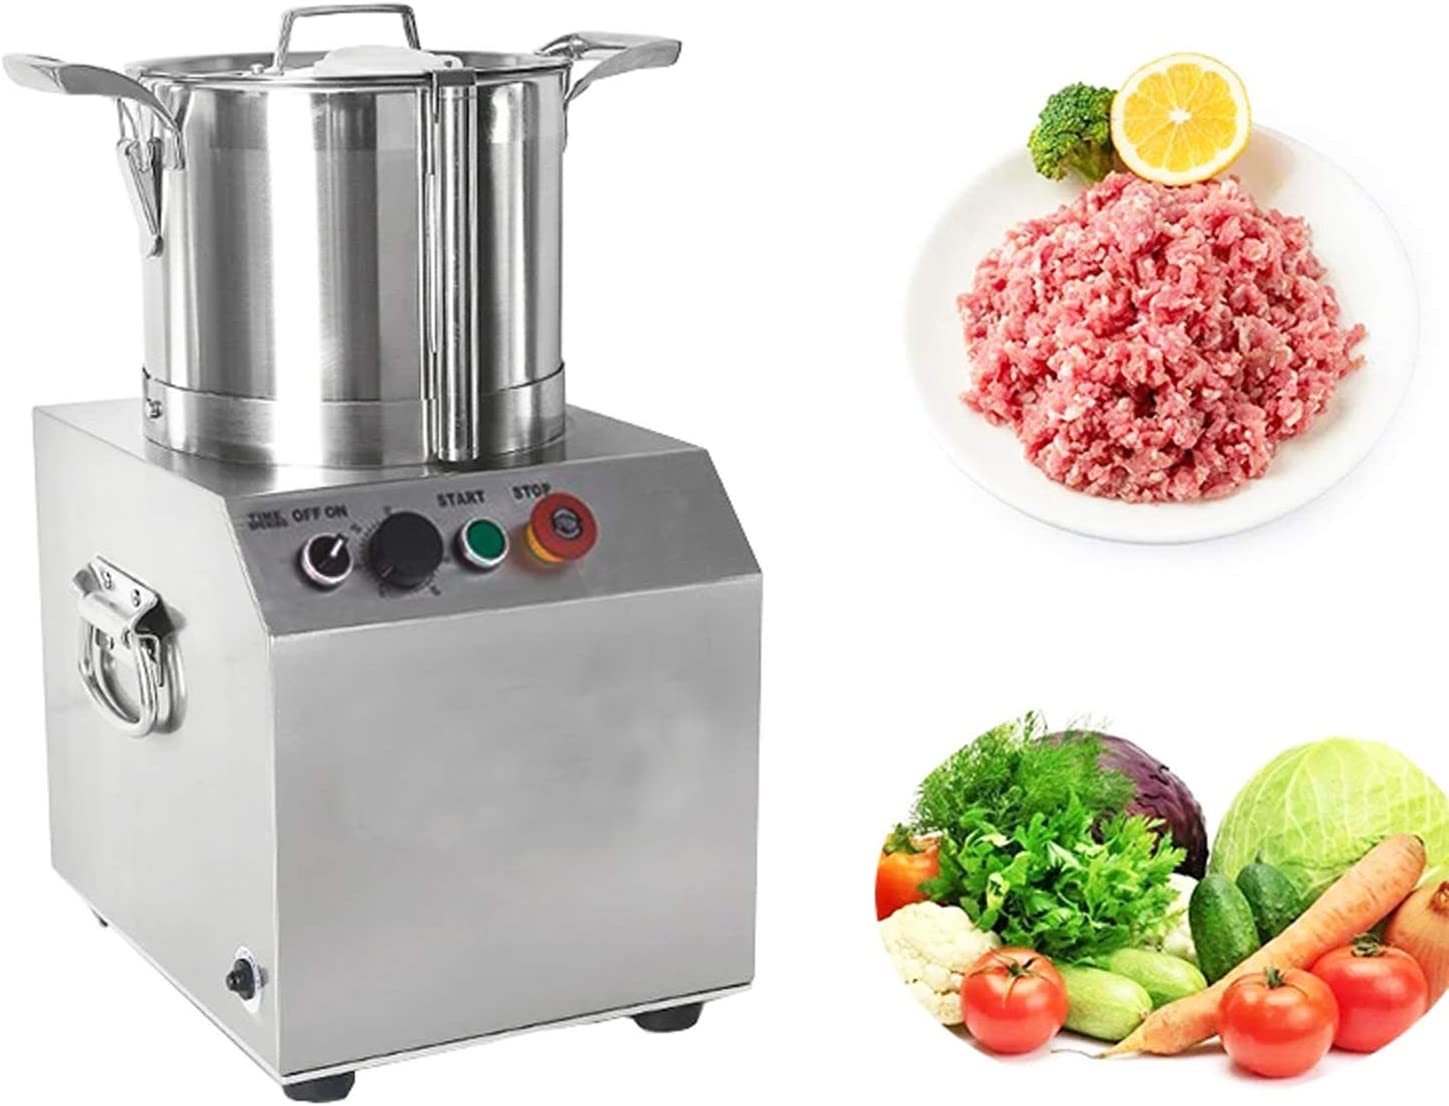 TECHTONGDA Commercial Food Processor Stainless Steel Meat Chopper Electric Vegetable Cutter 15L Multi-Function Food Grinder for Meat Fruits Vegetables Nuts and Ice Blender